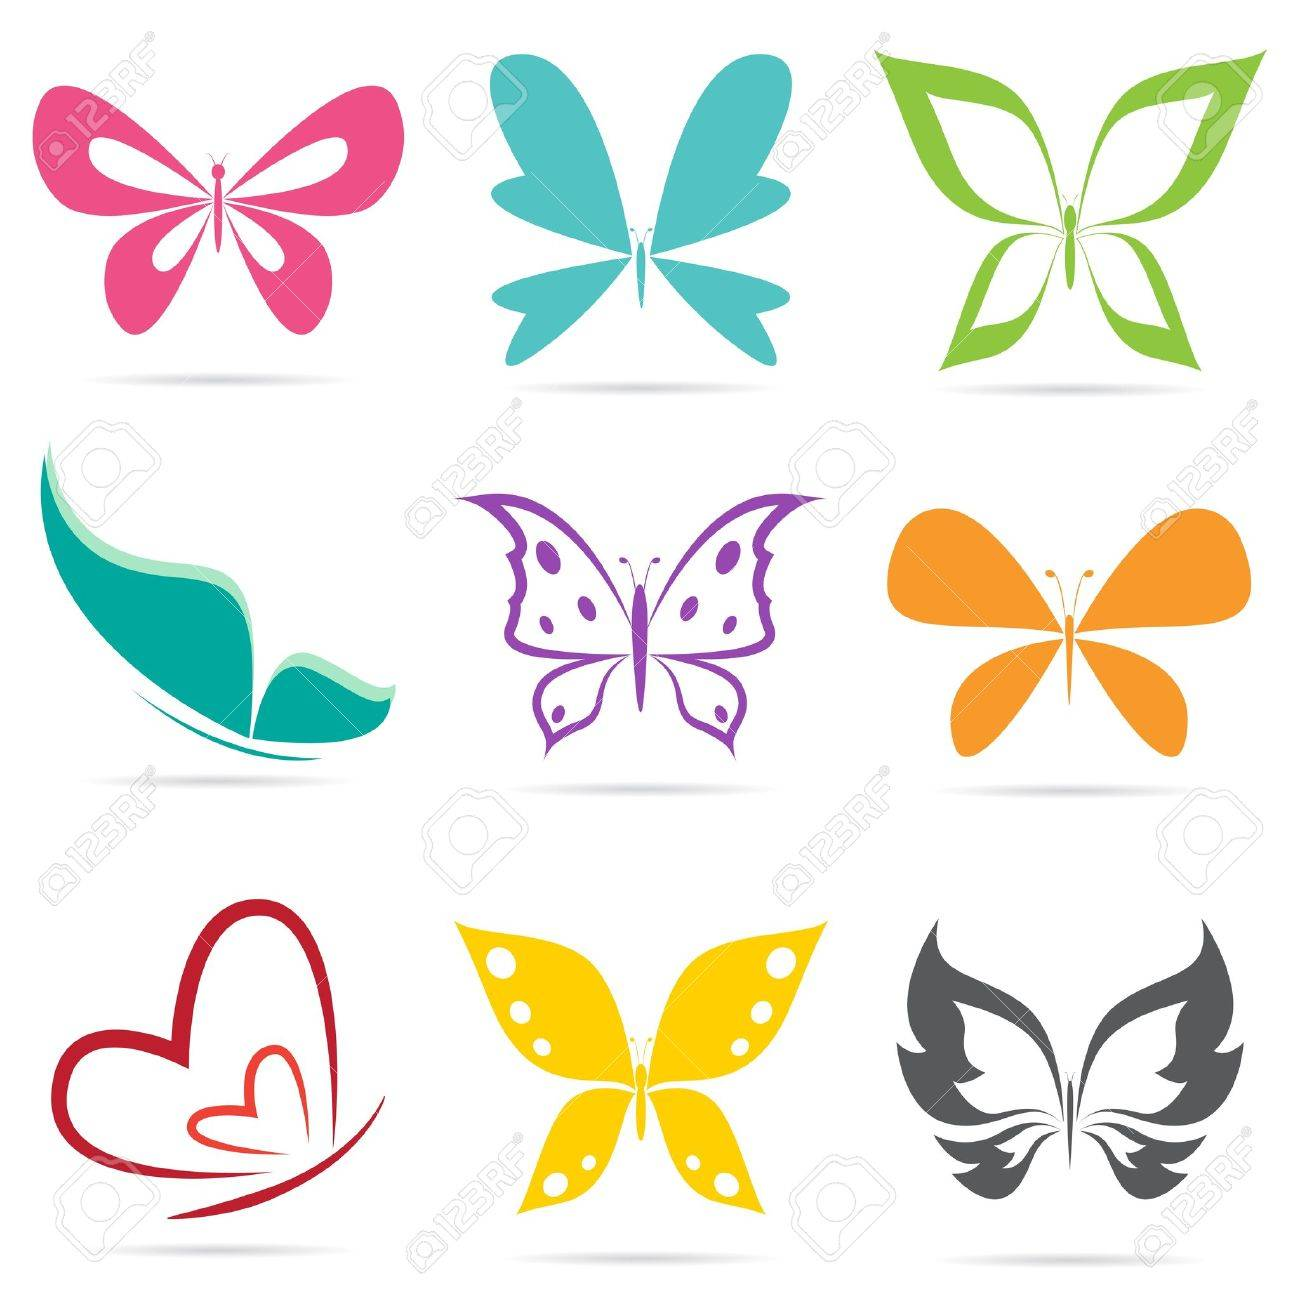 group of butterflies on white background royalty free cliparts